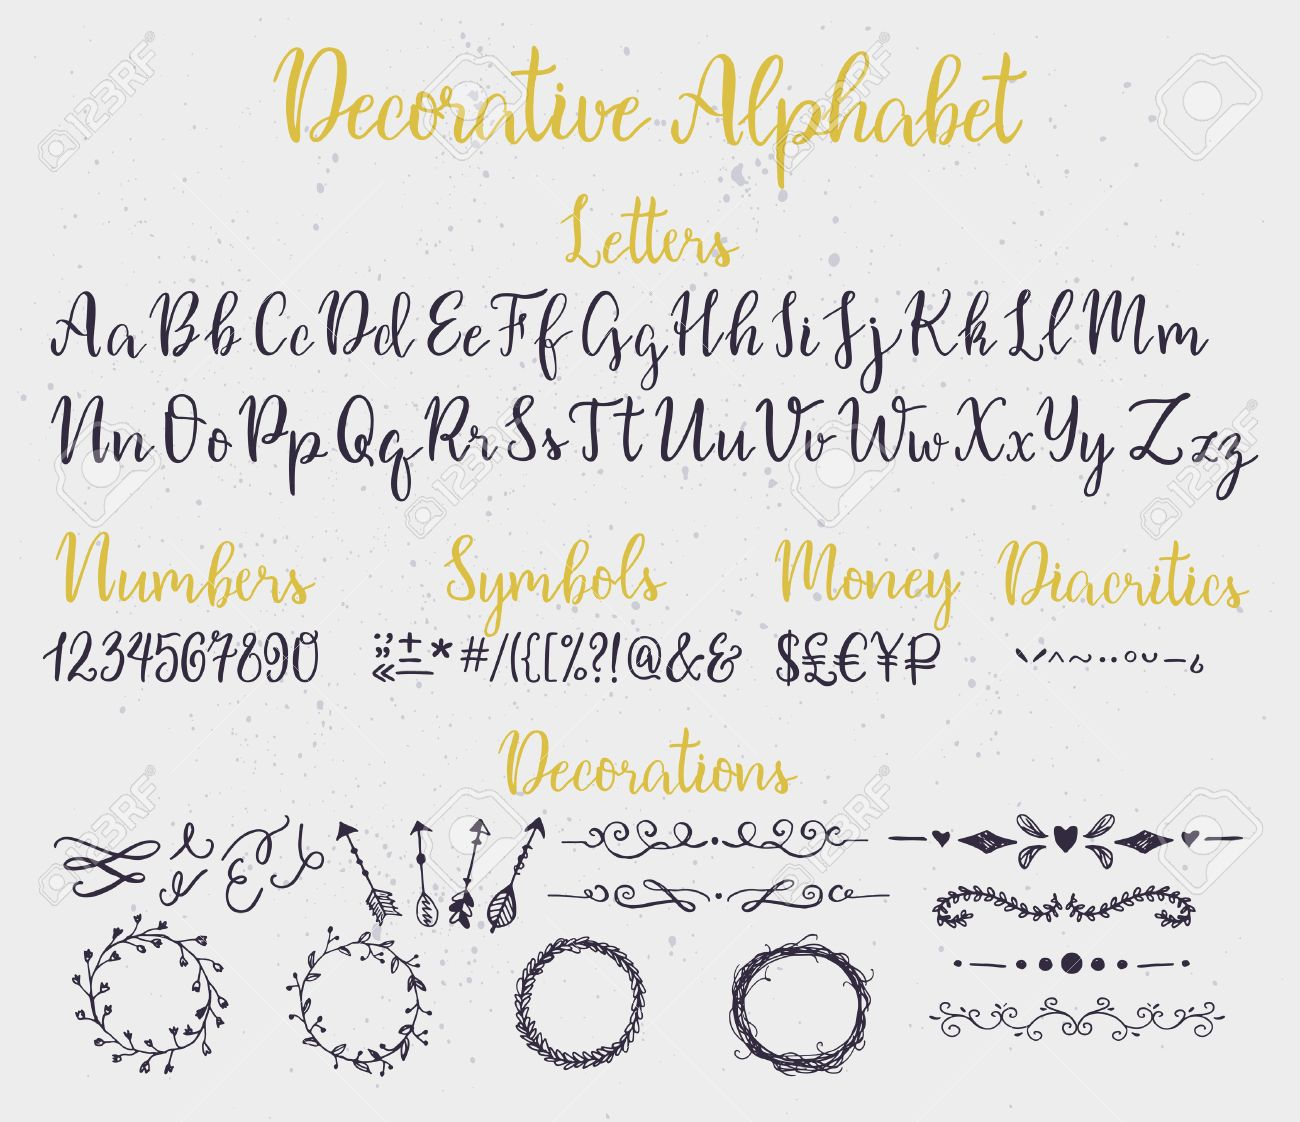 Modern Calligraphy Decorative Alphabet With Numbers Symbols